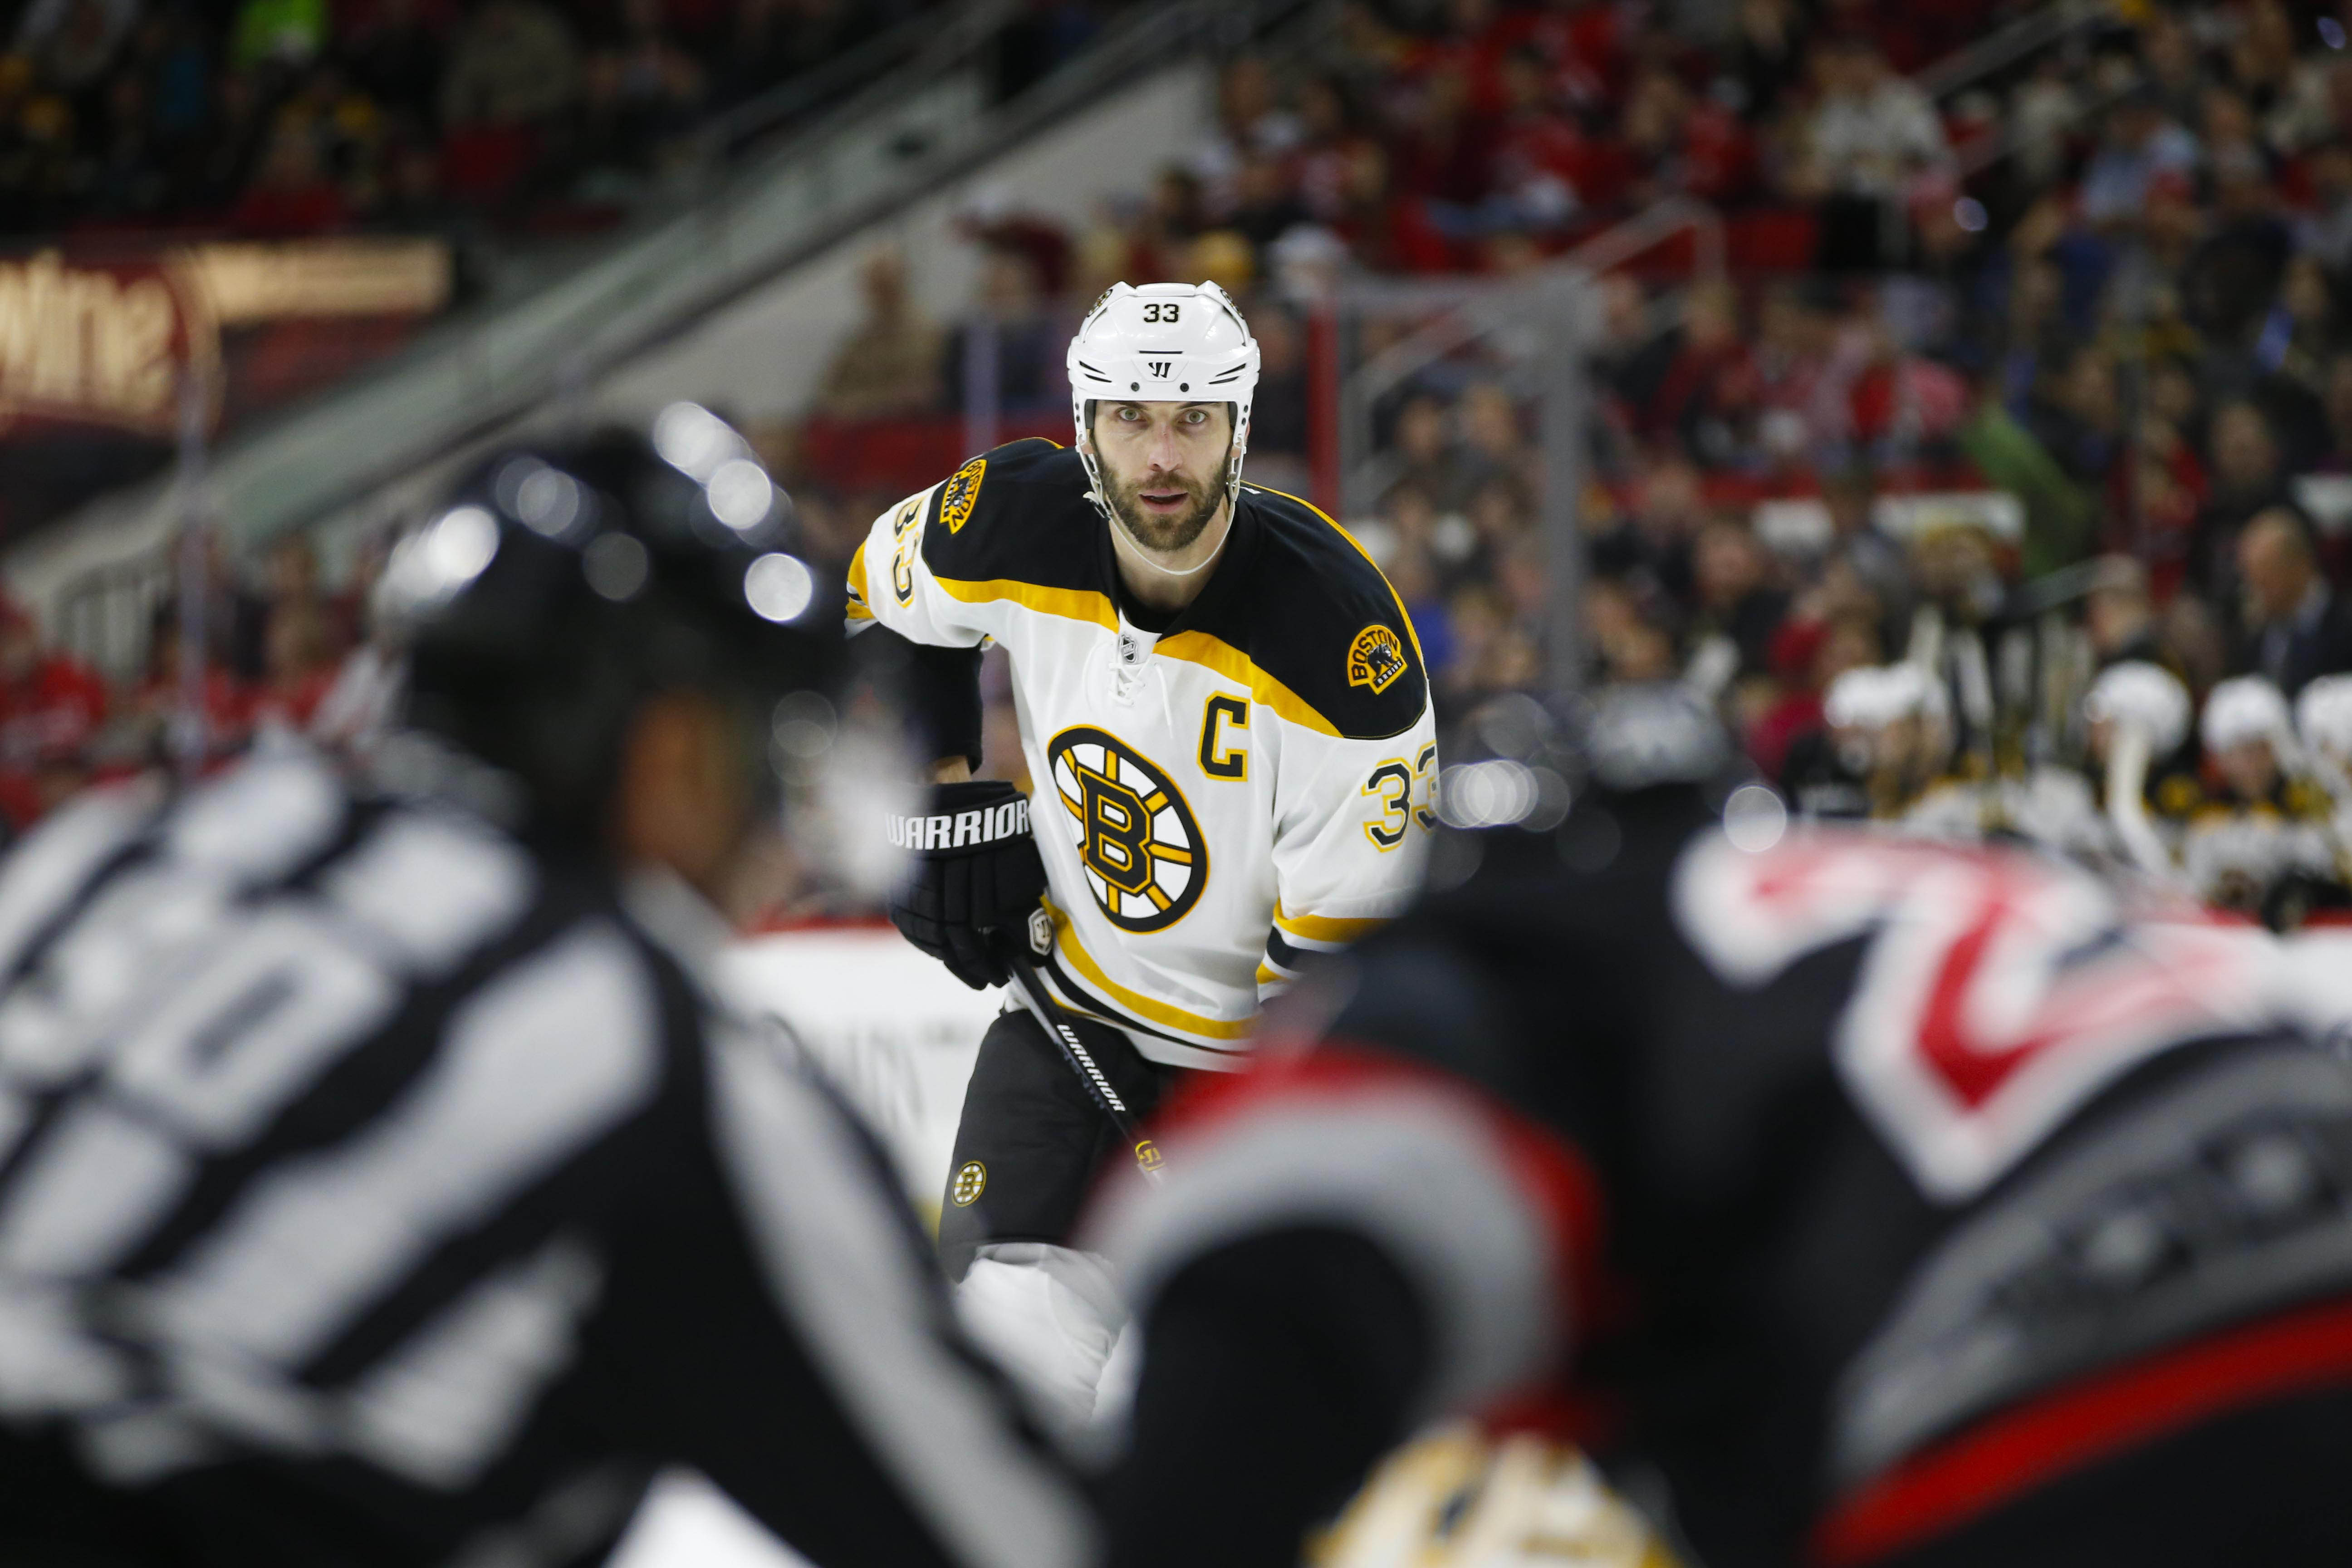 Sleepy Bruins Know They Need To Poke The Bear: 'We Have To Fight Through This'